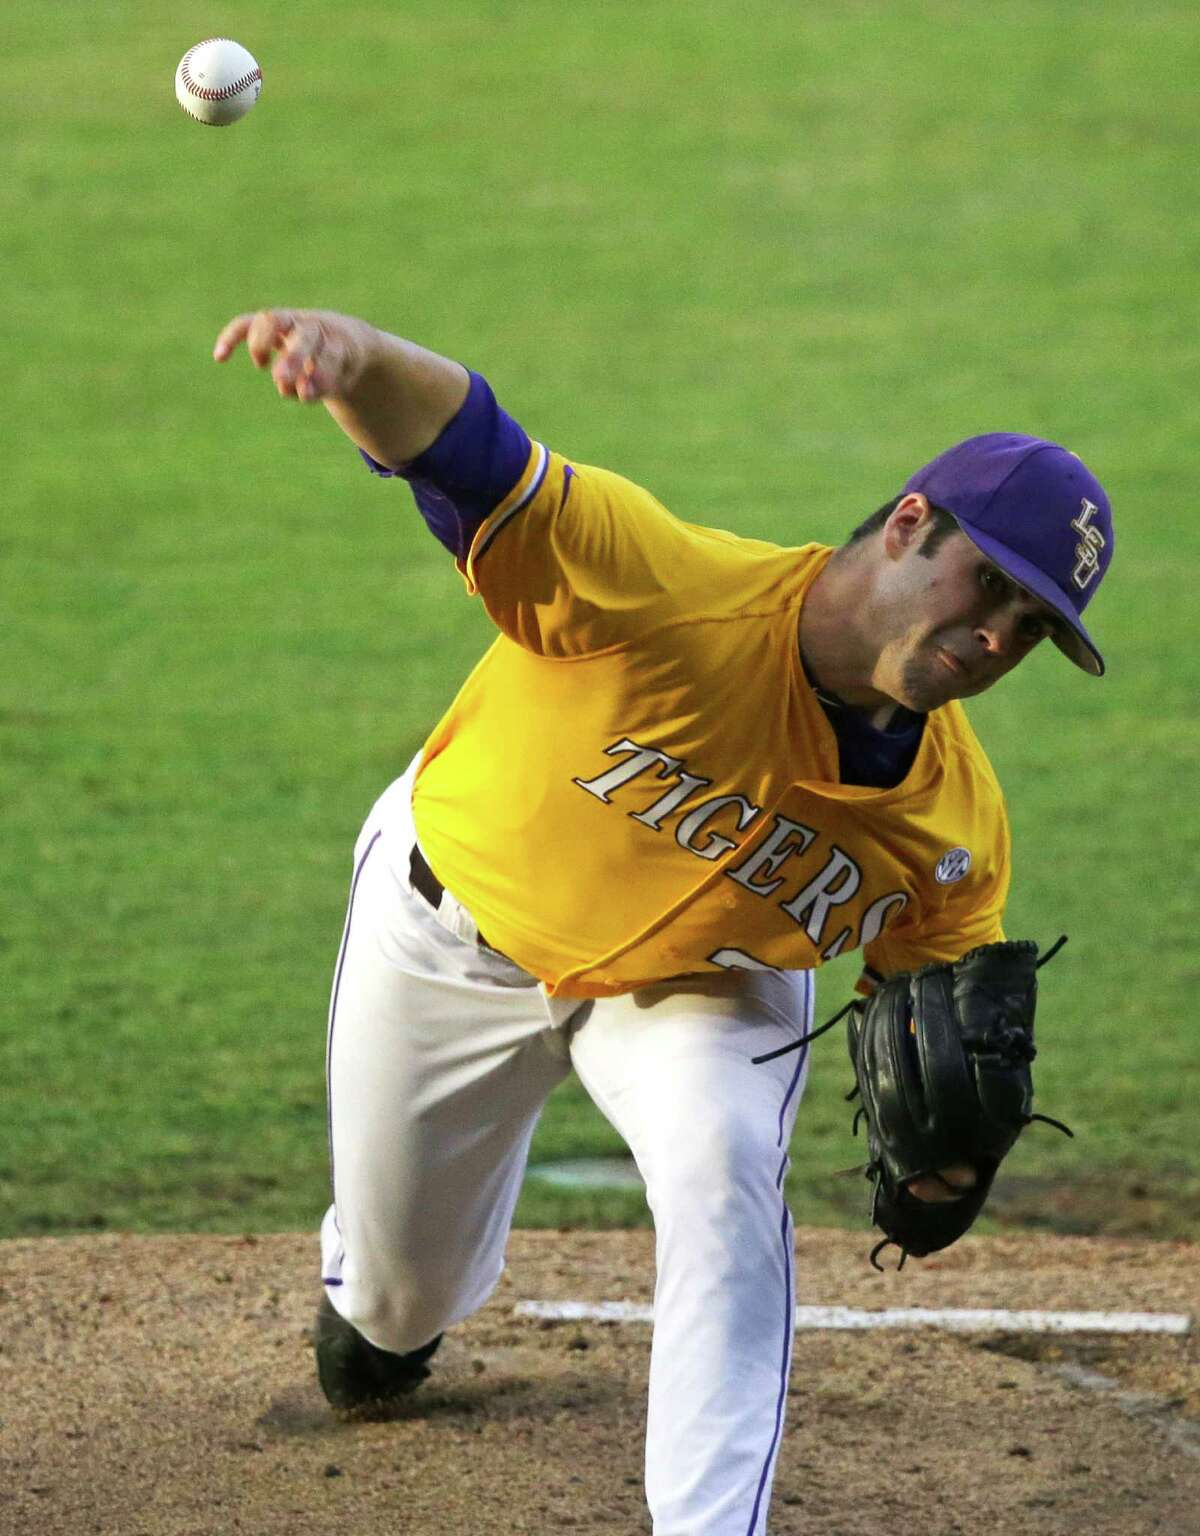 LSU pitcher Alden Cartwright works in the first inning of an NCAA college baseball regional tournament game against Houston in Baton Rouge, La., Monday, June 2, 2014. (AP Photo/Gerald Herbert)